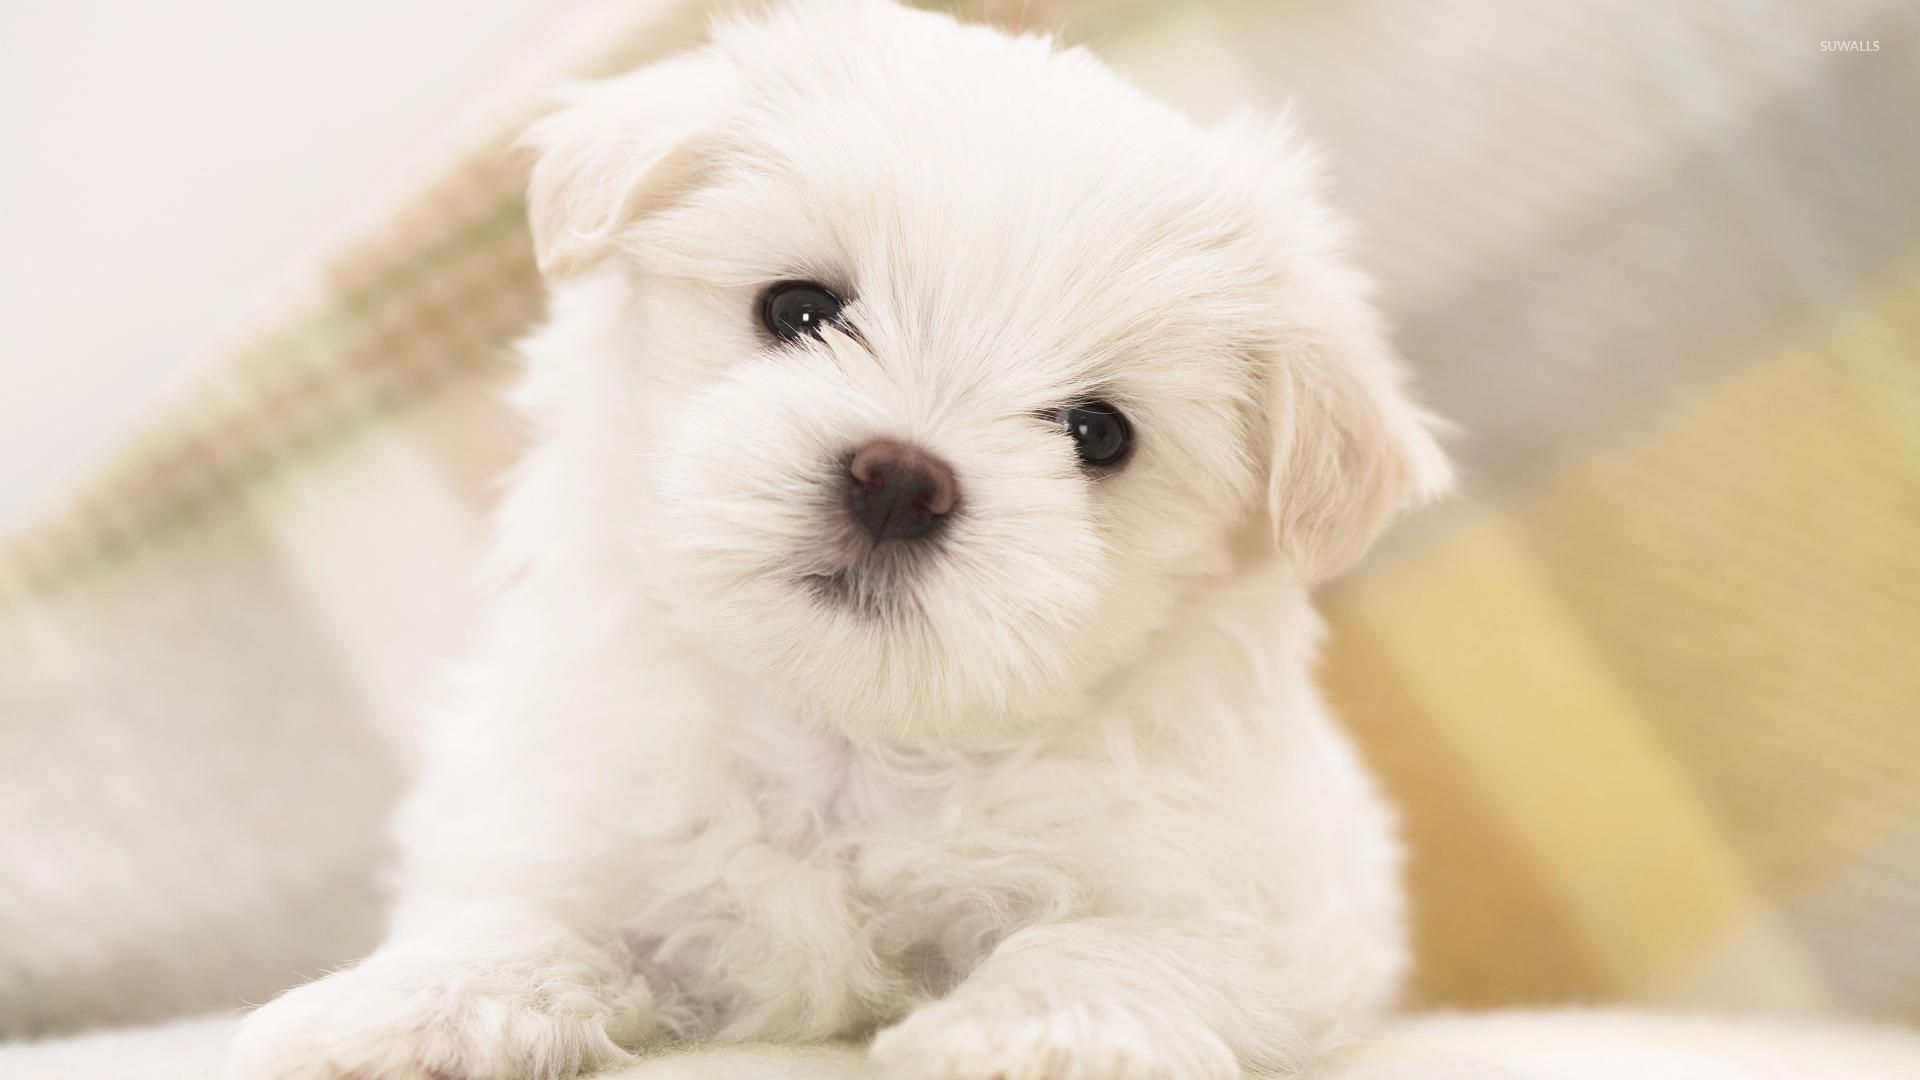 Cute White Fluffy Puppy With Black Eyes